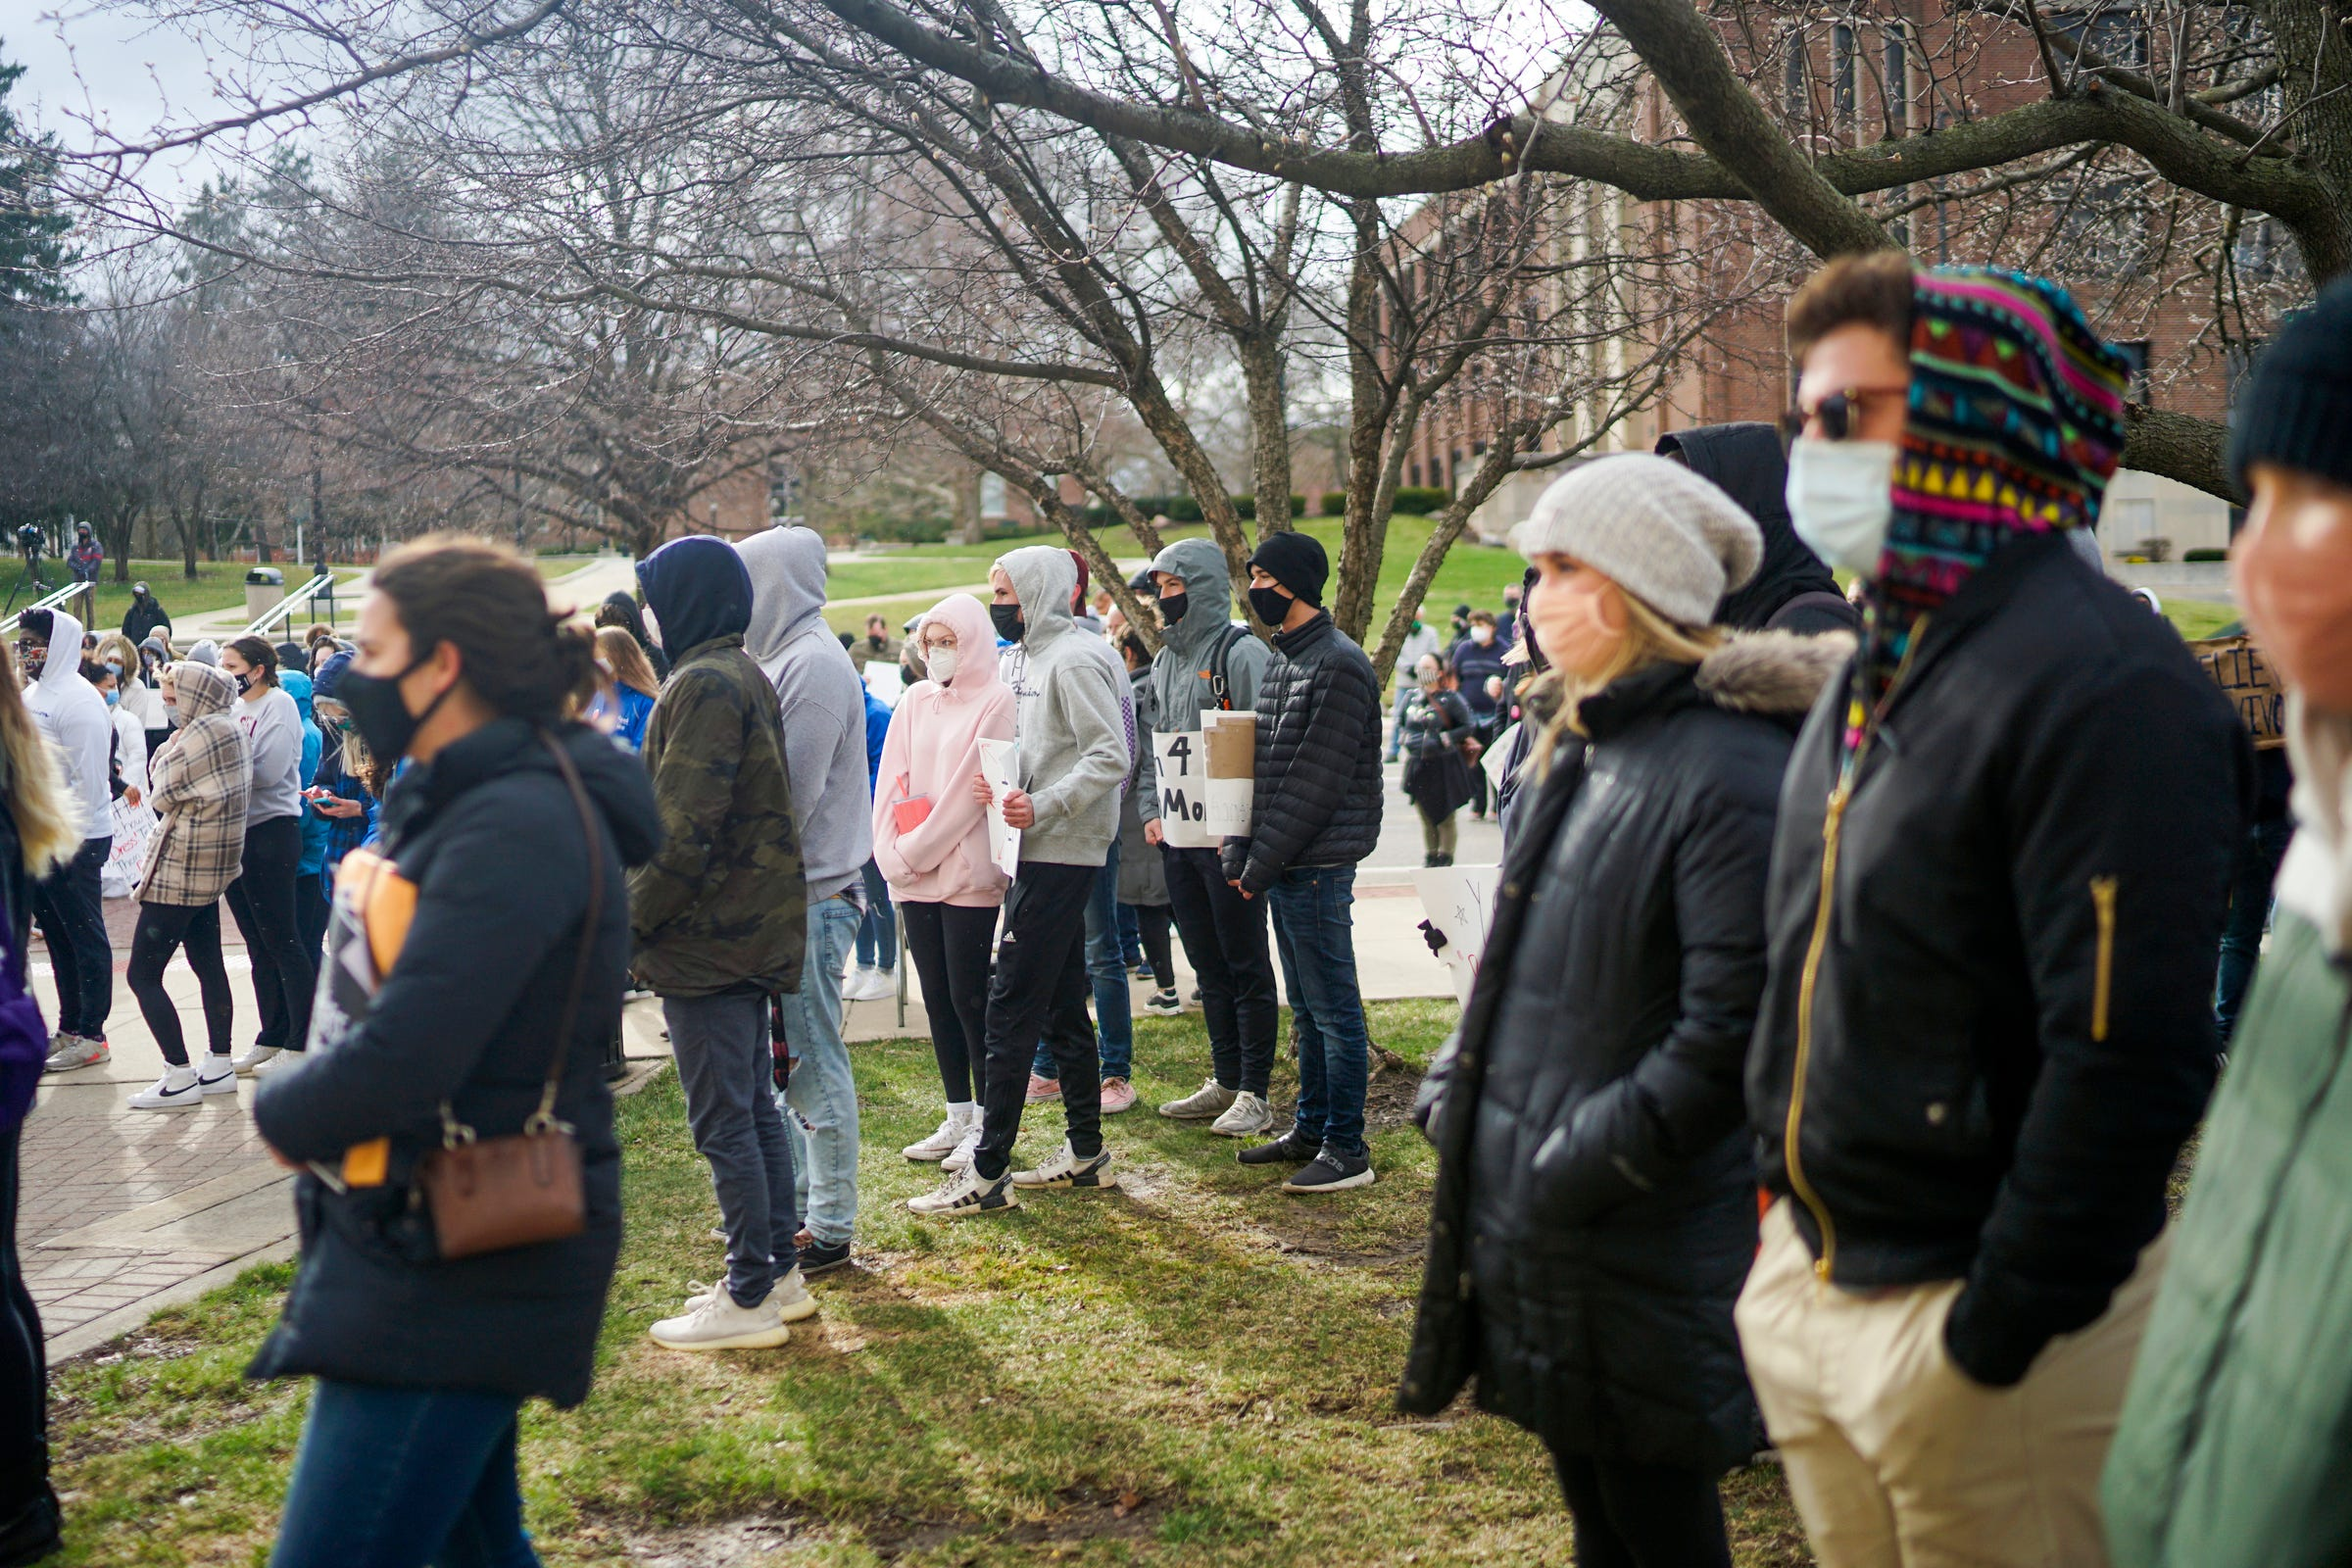 People listen to speakers during a protest at Eastern Michigan University on Sunday, March 28, 2021, in Ypsilanti supporting sexual assault survivors in response to news of 11 women who filed a lawsuit against EMU. The Title IX lawsuit was filed the prior week against the Eastern Michigan University Board of Regents and two fraternities, saying they covered up and failed to adequately address sexual assaults by several male students, according to previous Free Press reporting.